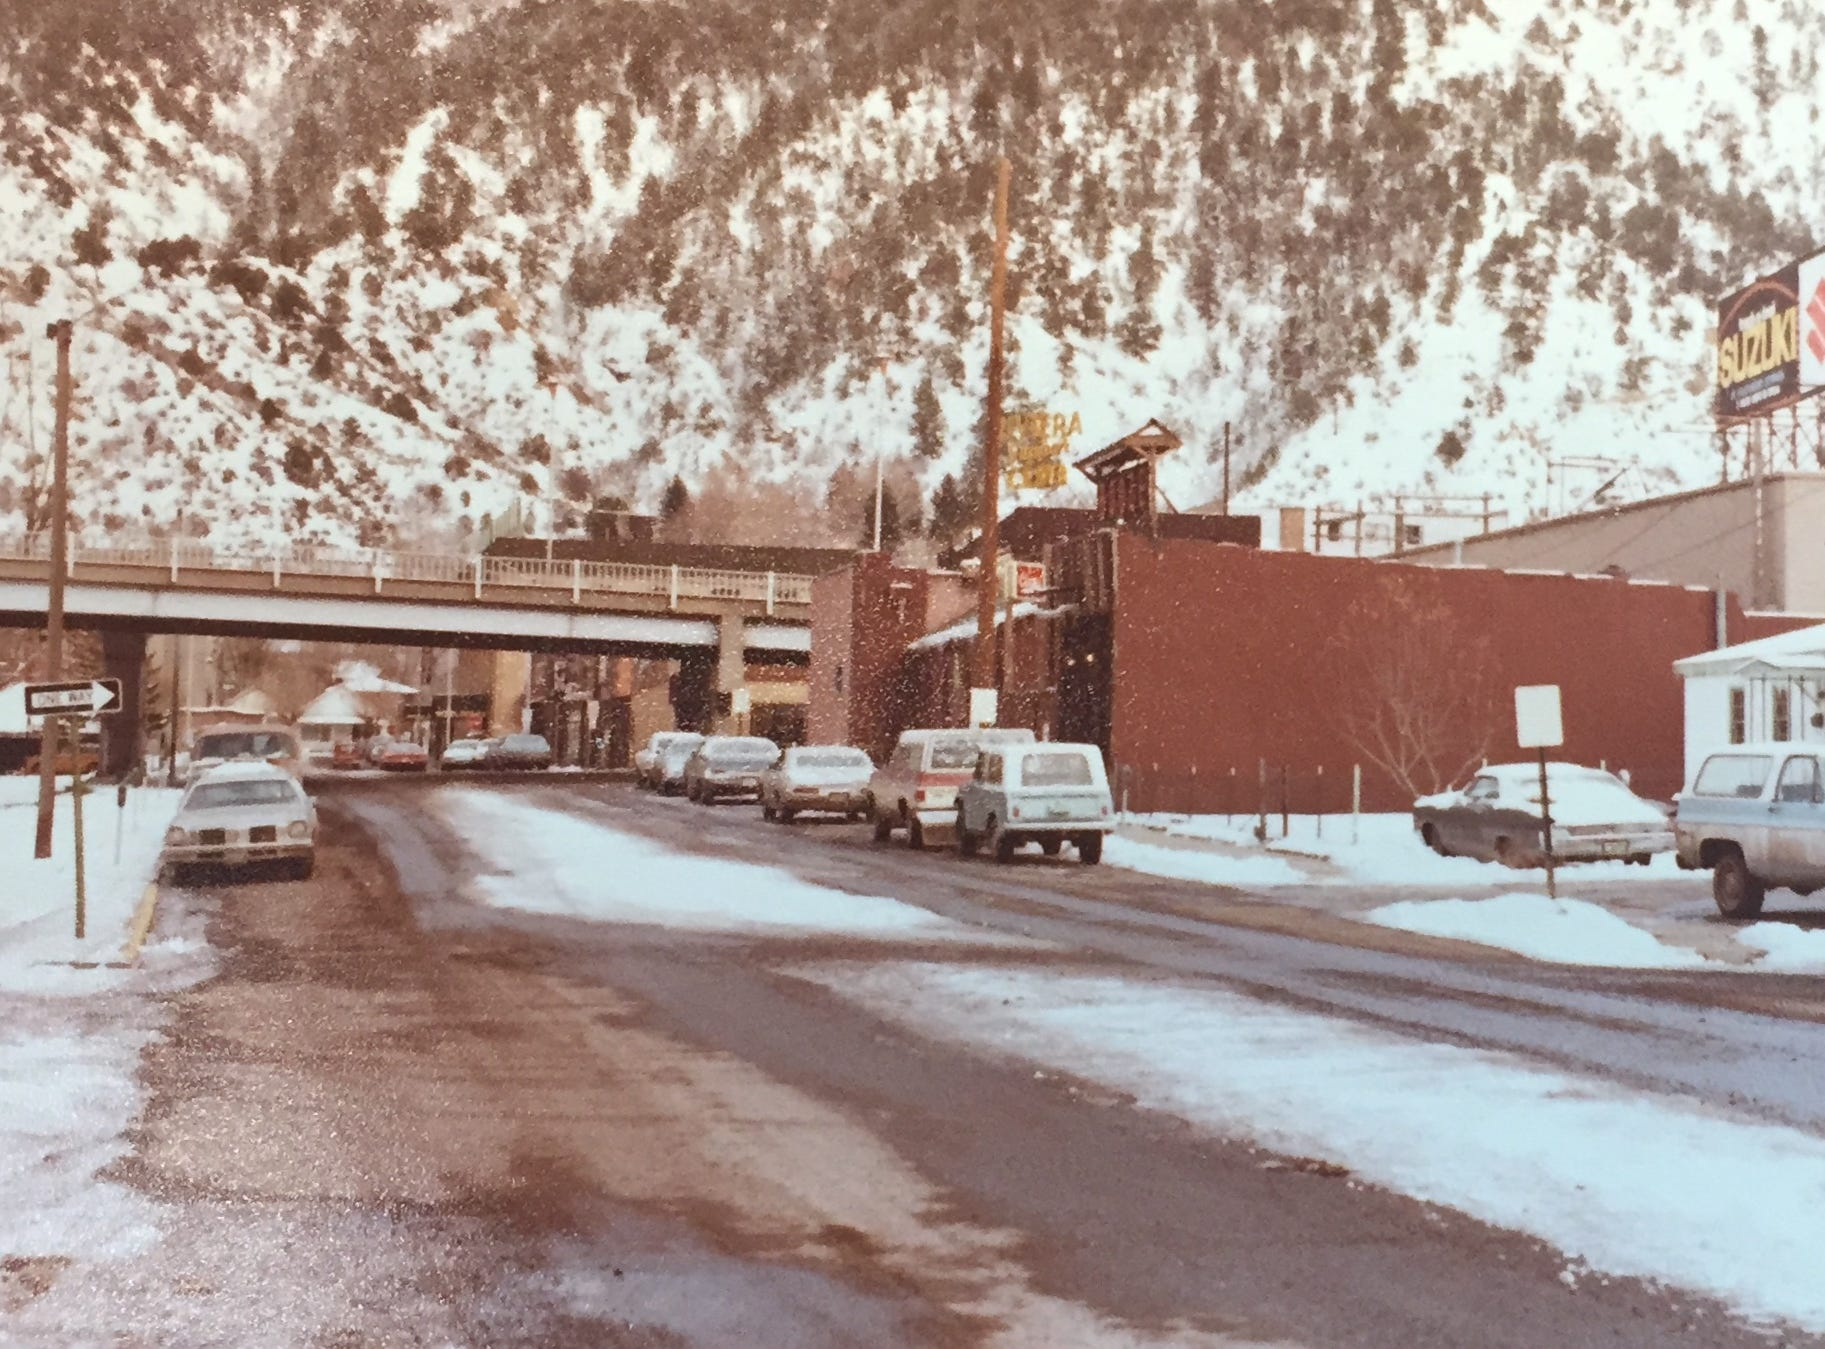 After his escape in Aspen, Bundy is moved into a solitary confinement cell in the Garfield County jail in Glenwood Springs, Colo. (pictured here in 1978).